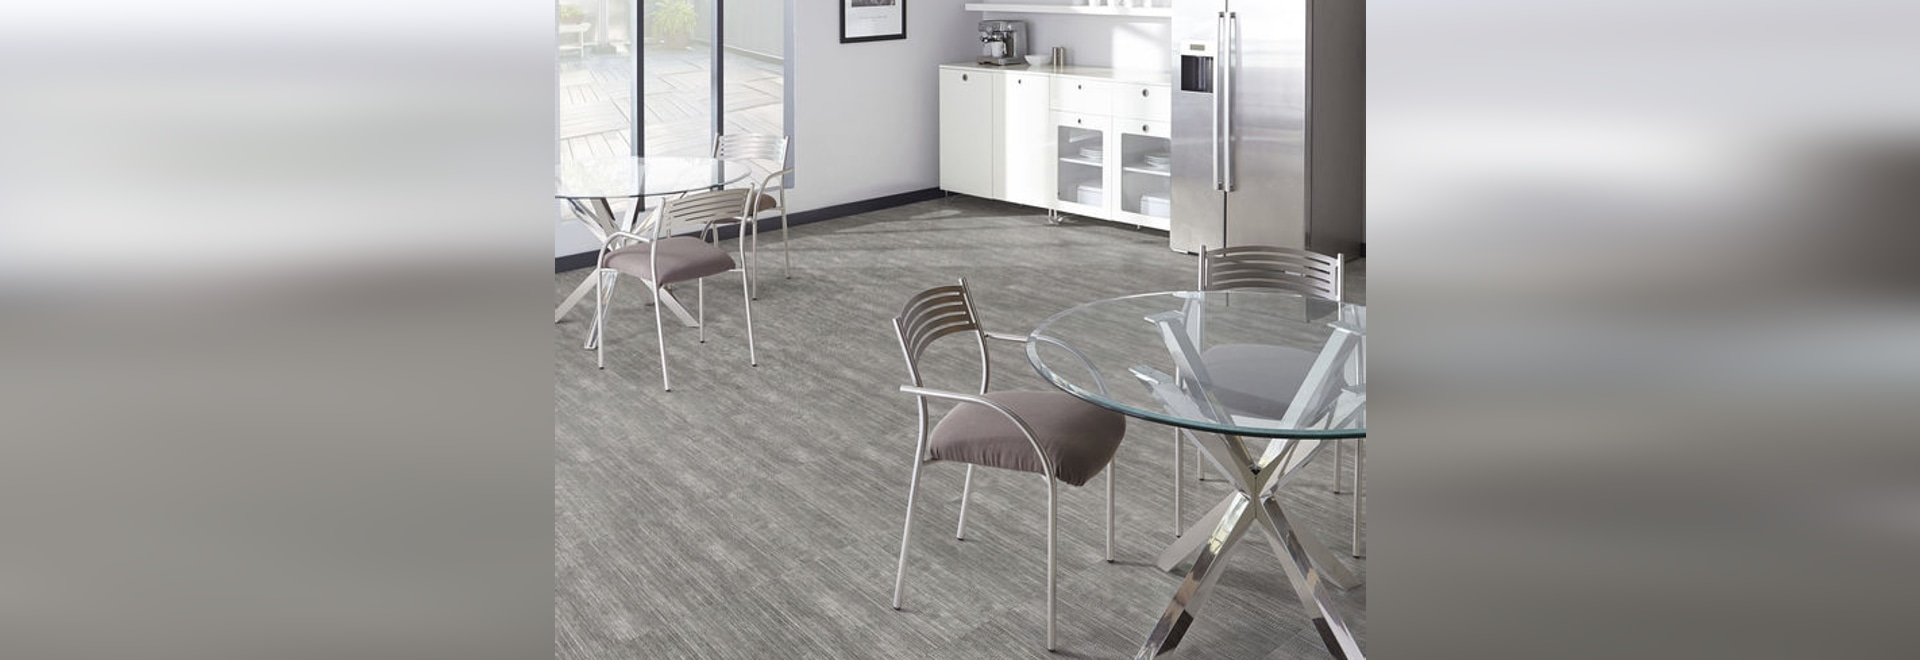 New vinyl floor tile by milliken contract milliken contract new vinyl floor tile by milliken contract dailygadgetfo Choice Image